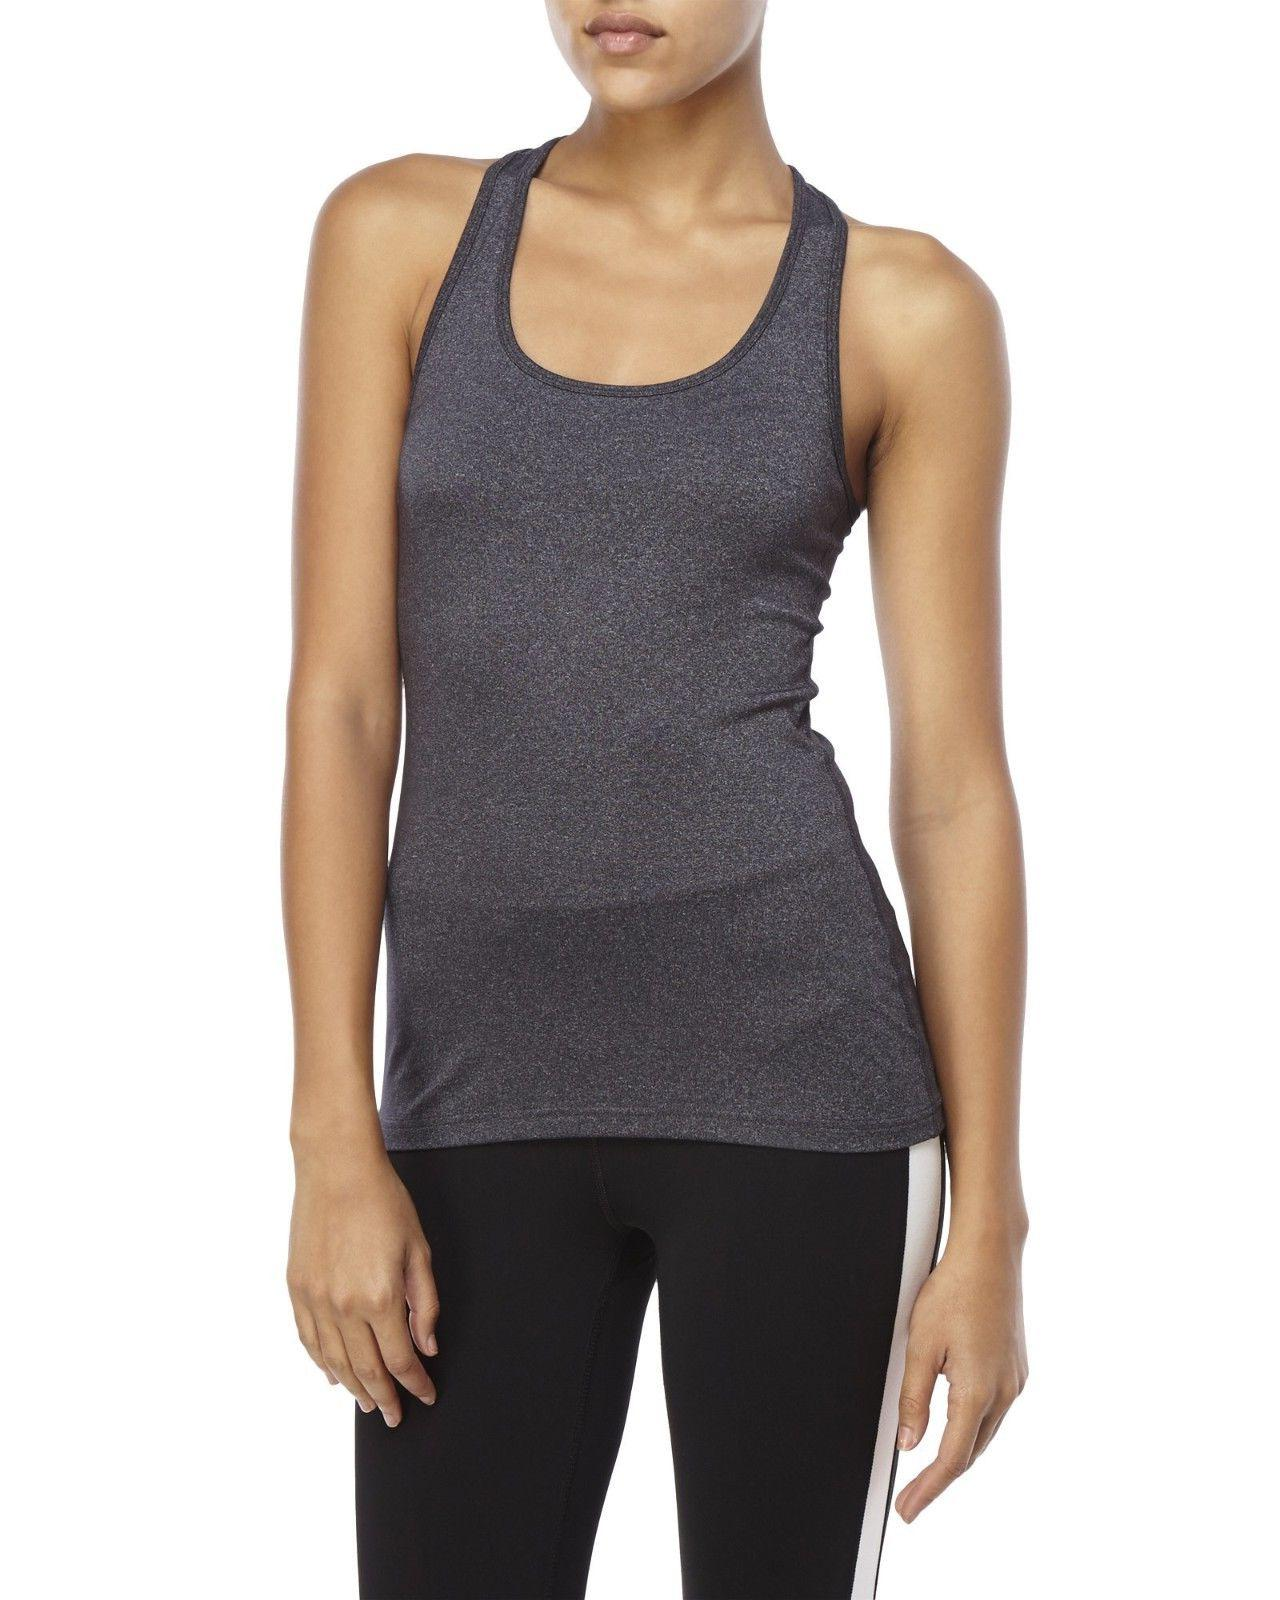 women s dark gray tank top size